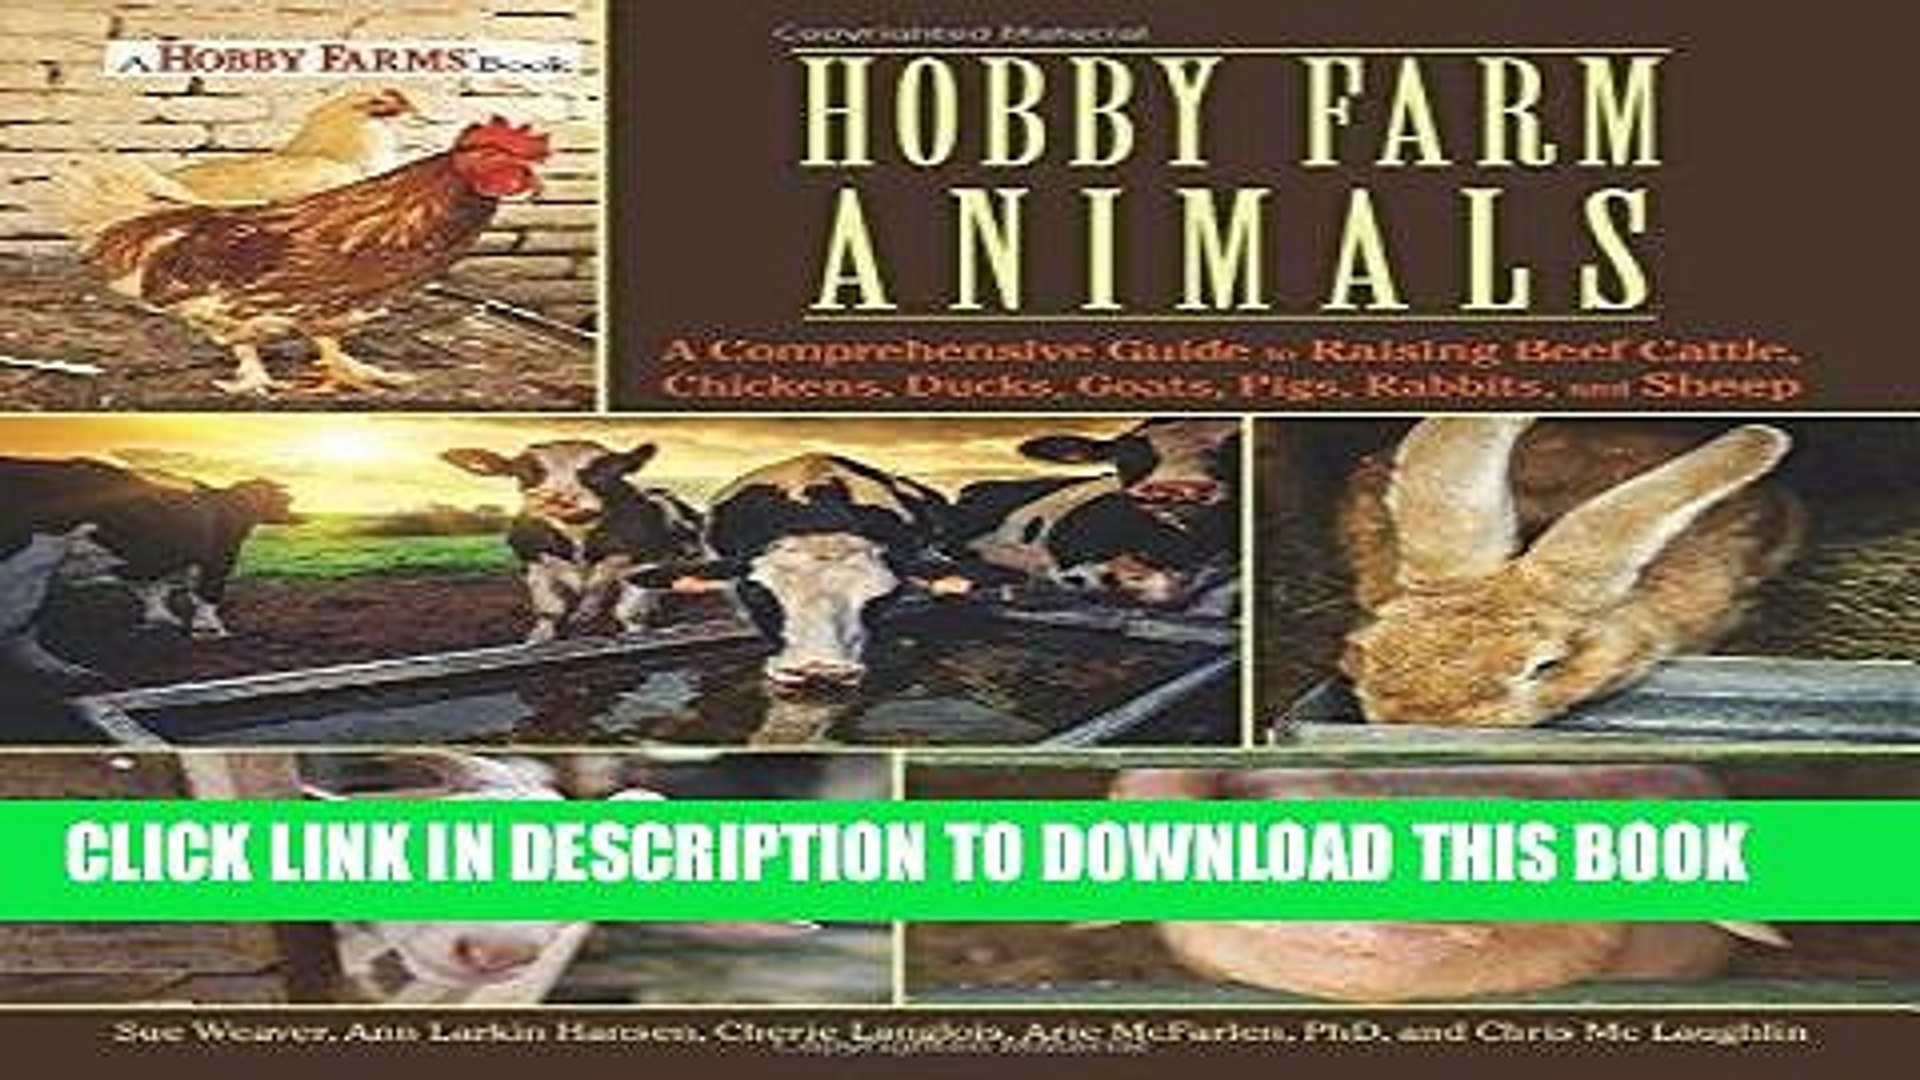 [PDF] Hobby Farm Animals: A Comprehensive Guide to Raising Chickens, Ducks,  Rabbits, Goats, Pigs,